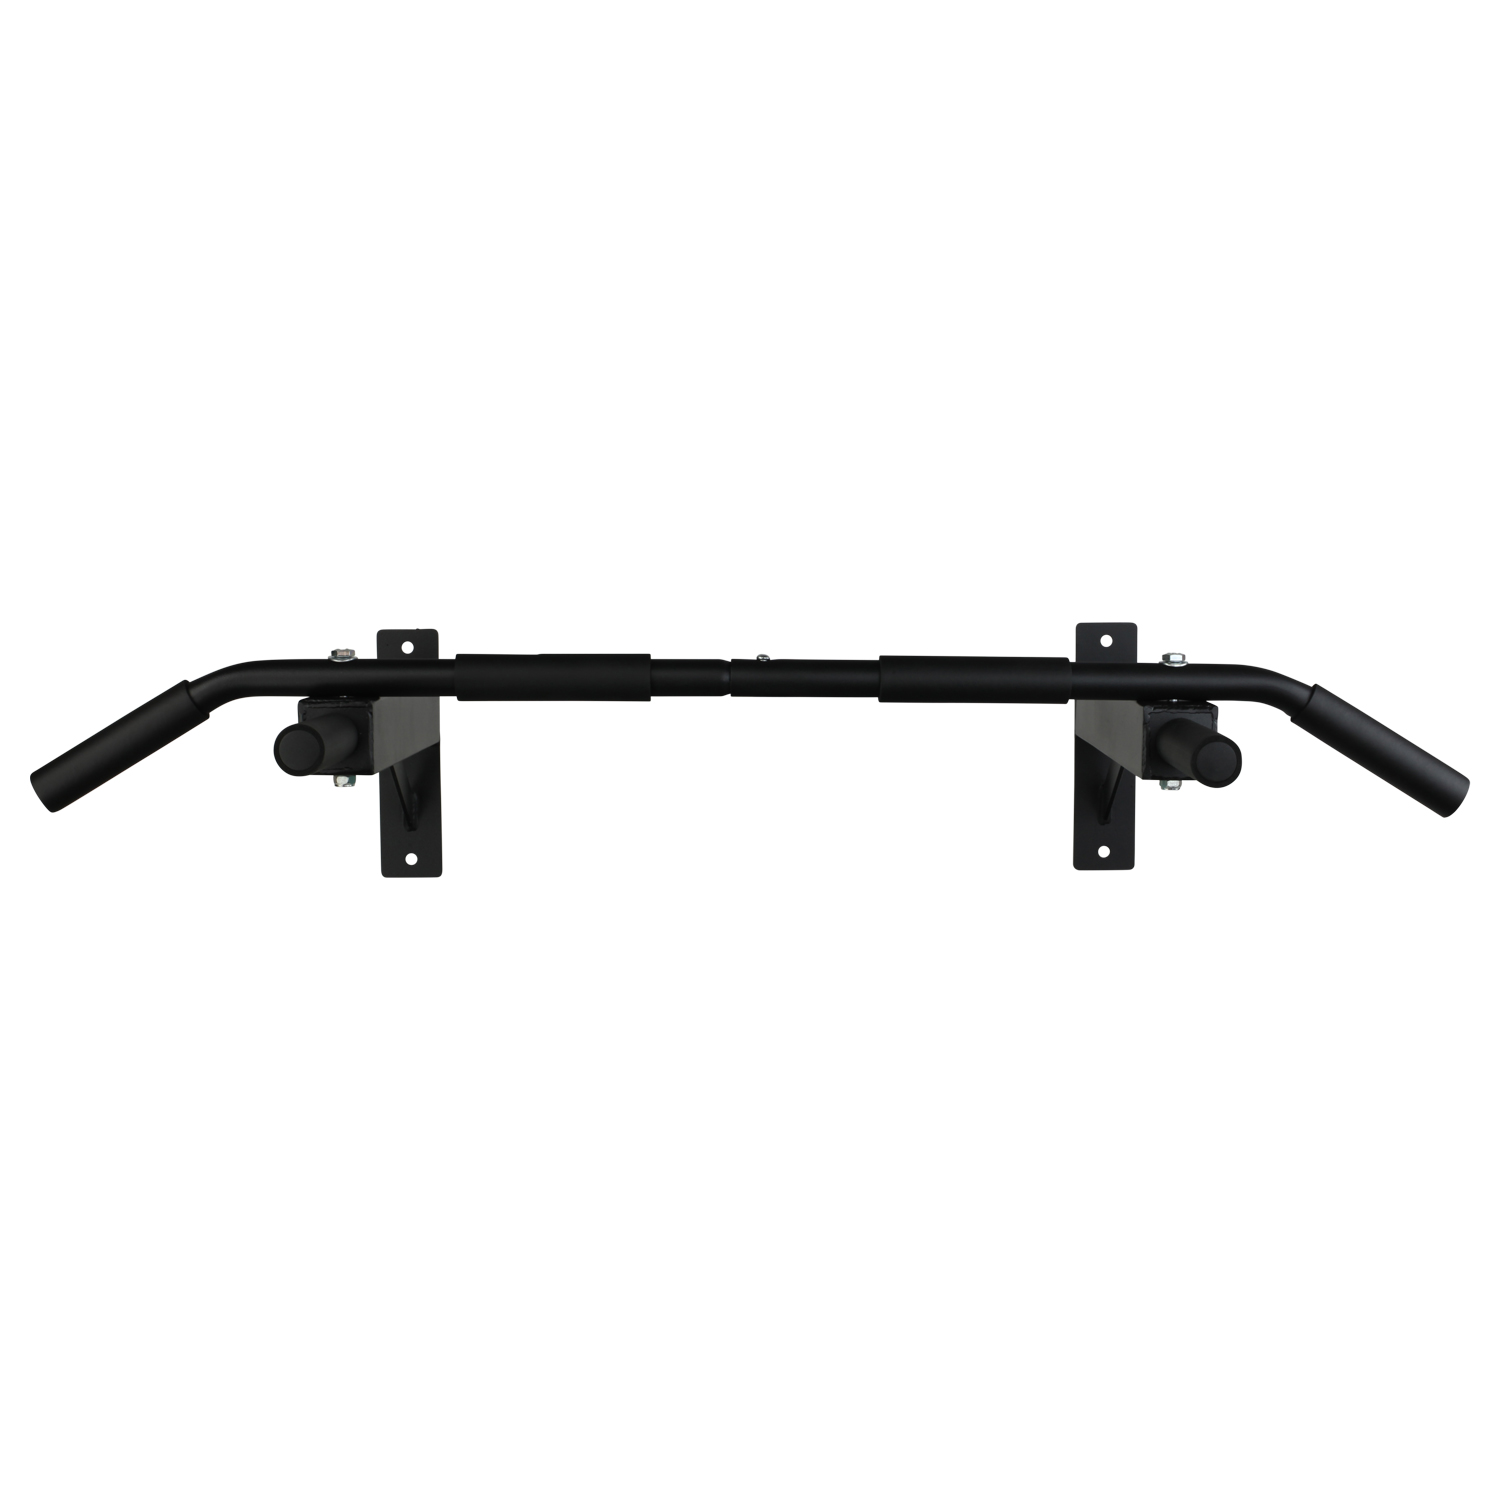 cPro9 Pull Up Bar